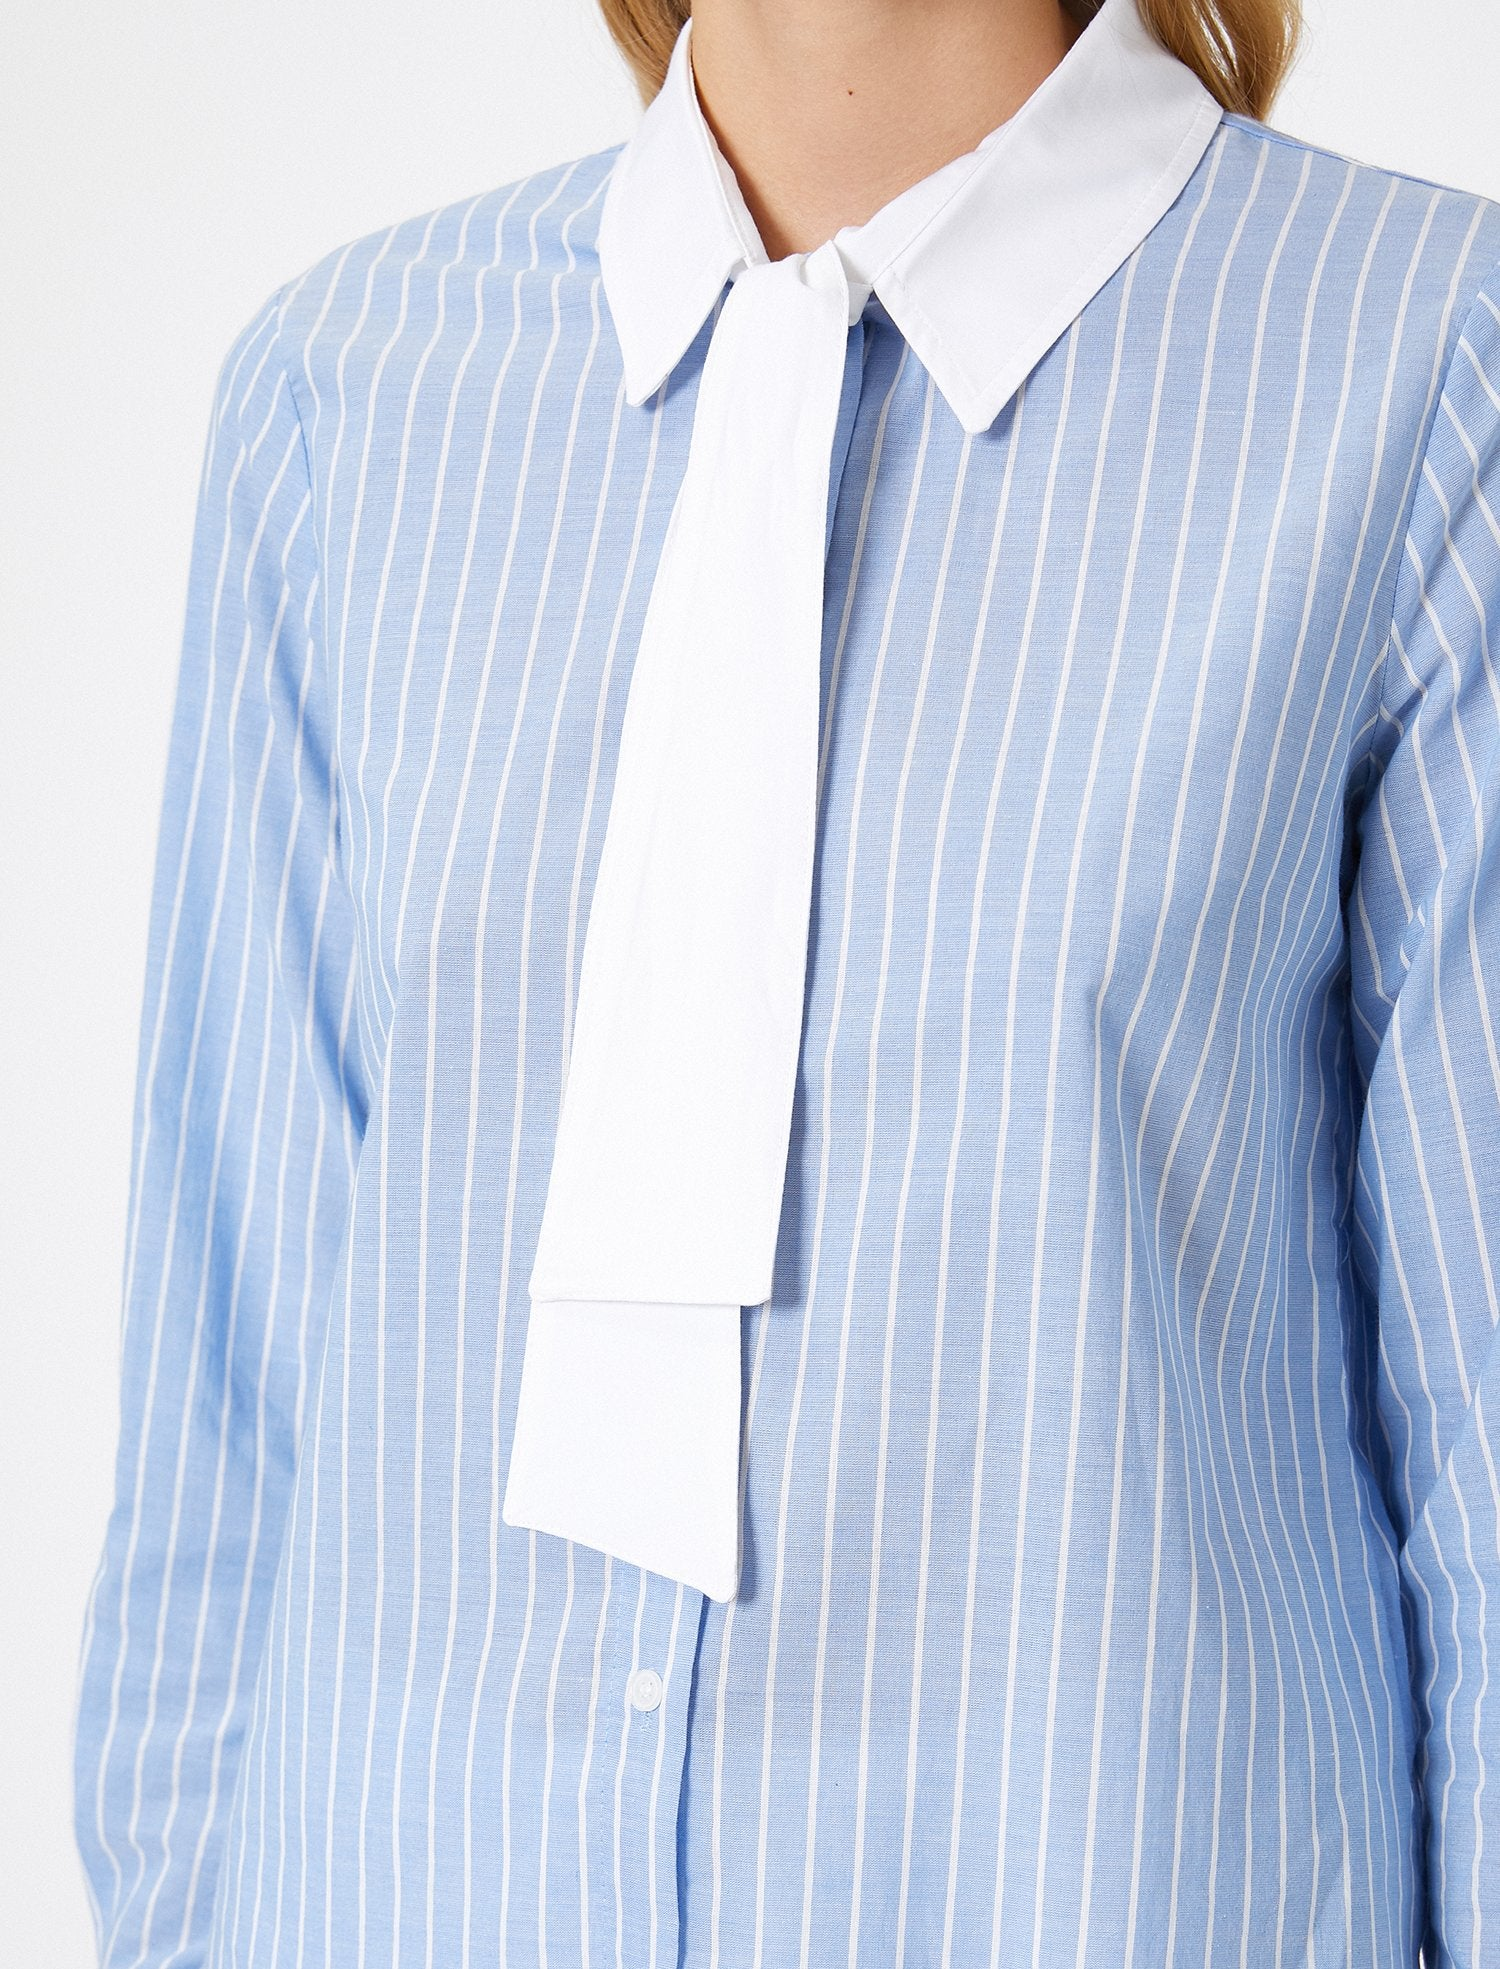 Contrast Collar Striped Shirt in White